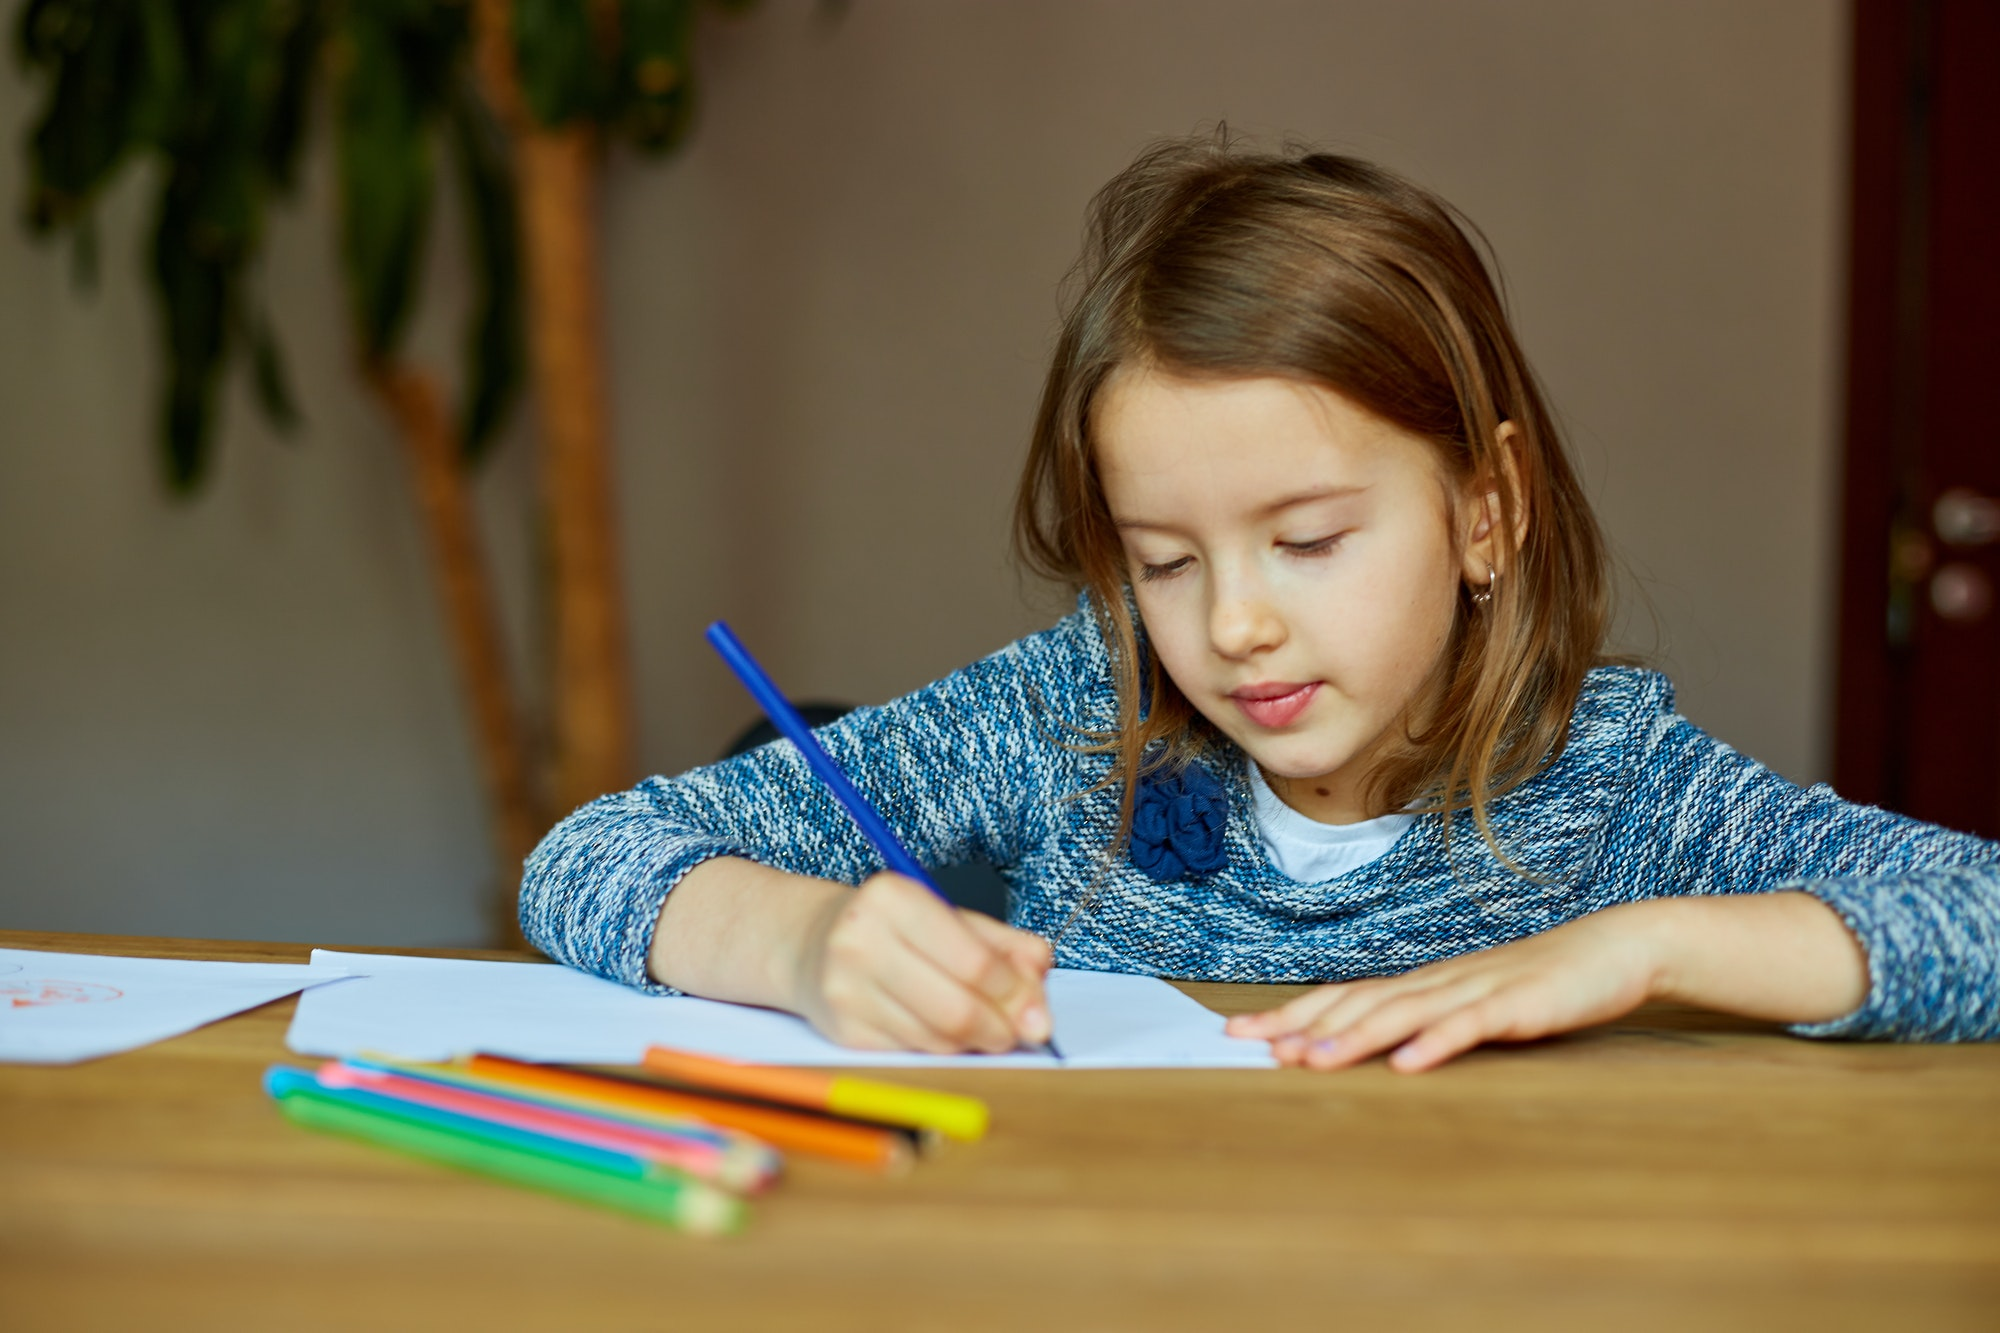 School girl drawing and writing a picture with crayons, using colored pencils